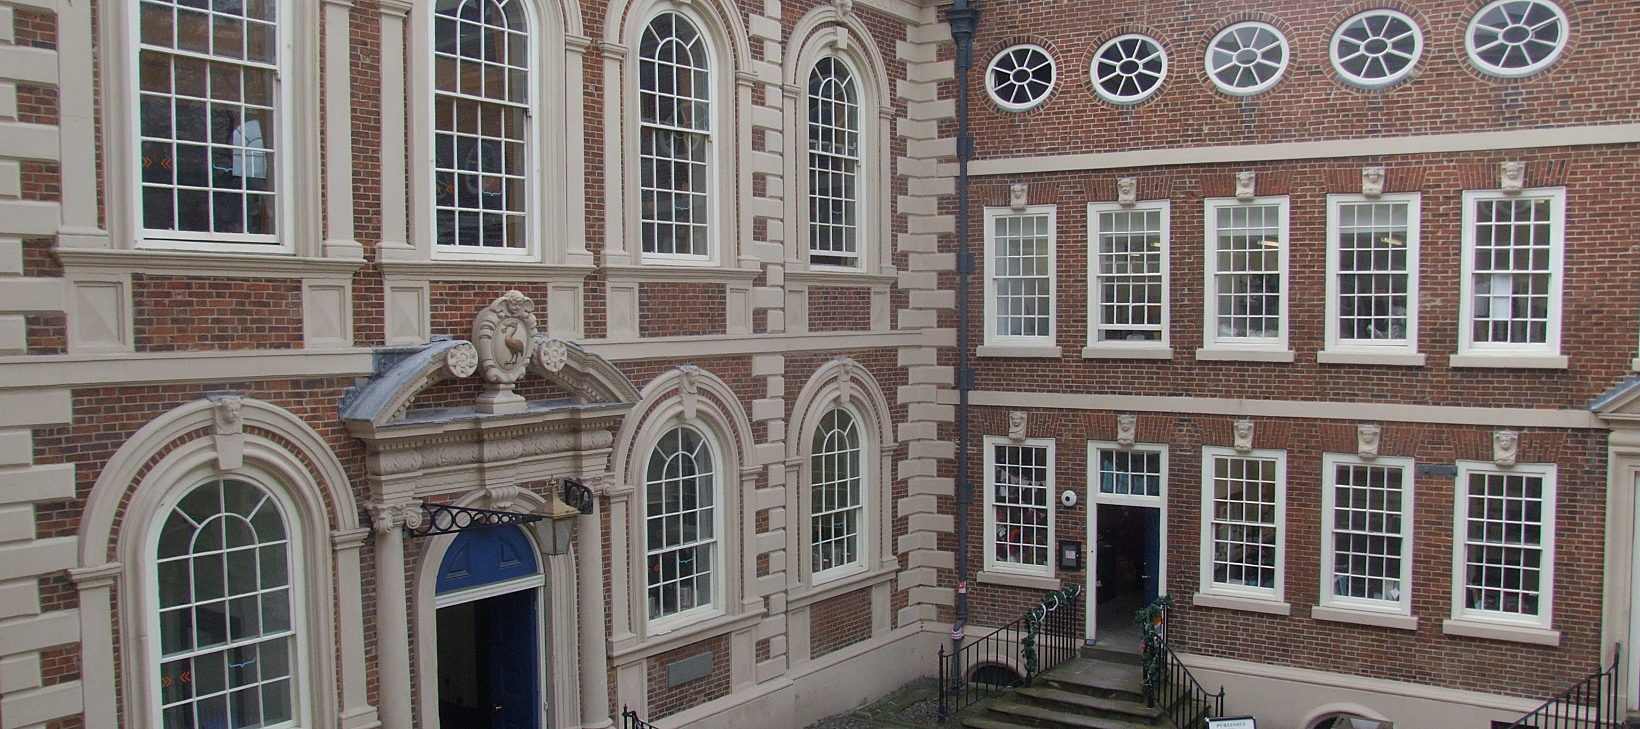 View of Bluecoat's entrance and front courtyard, taken from a top floor window.